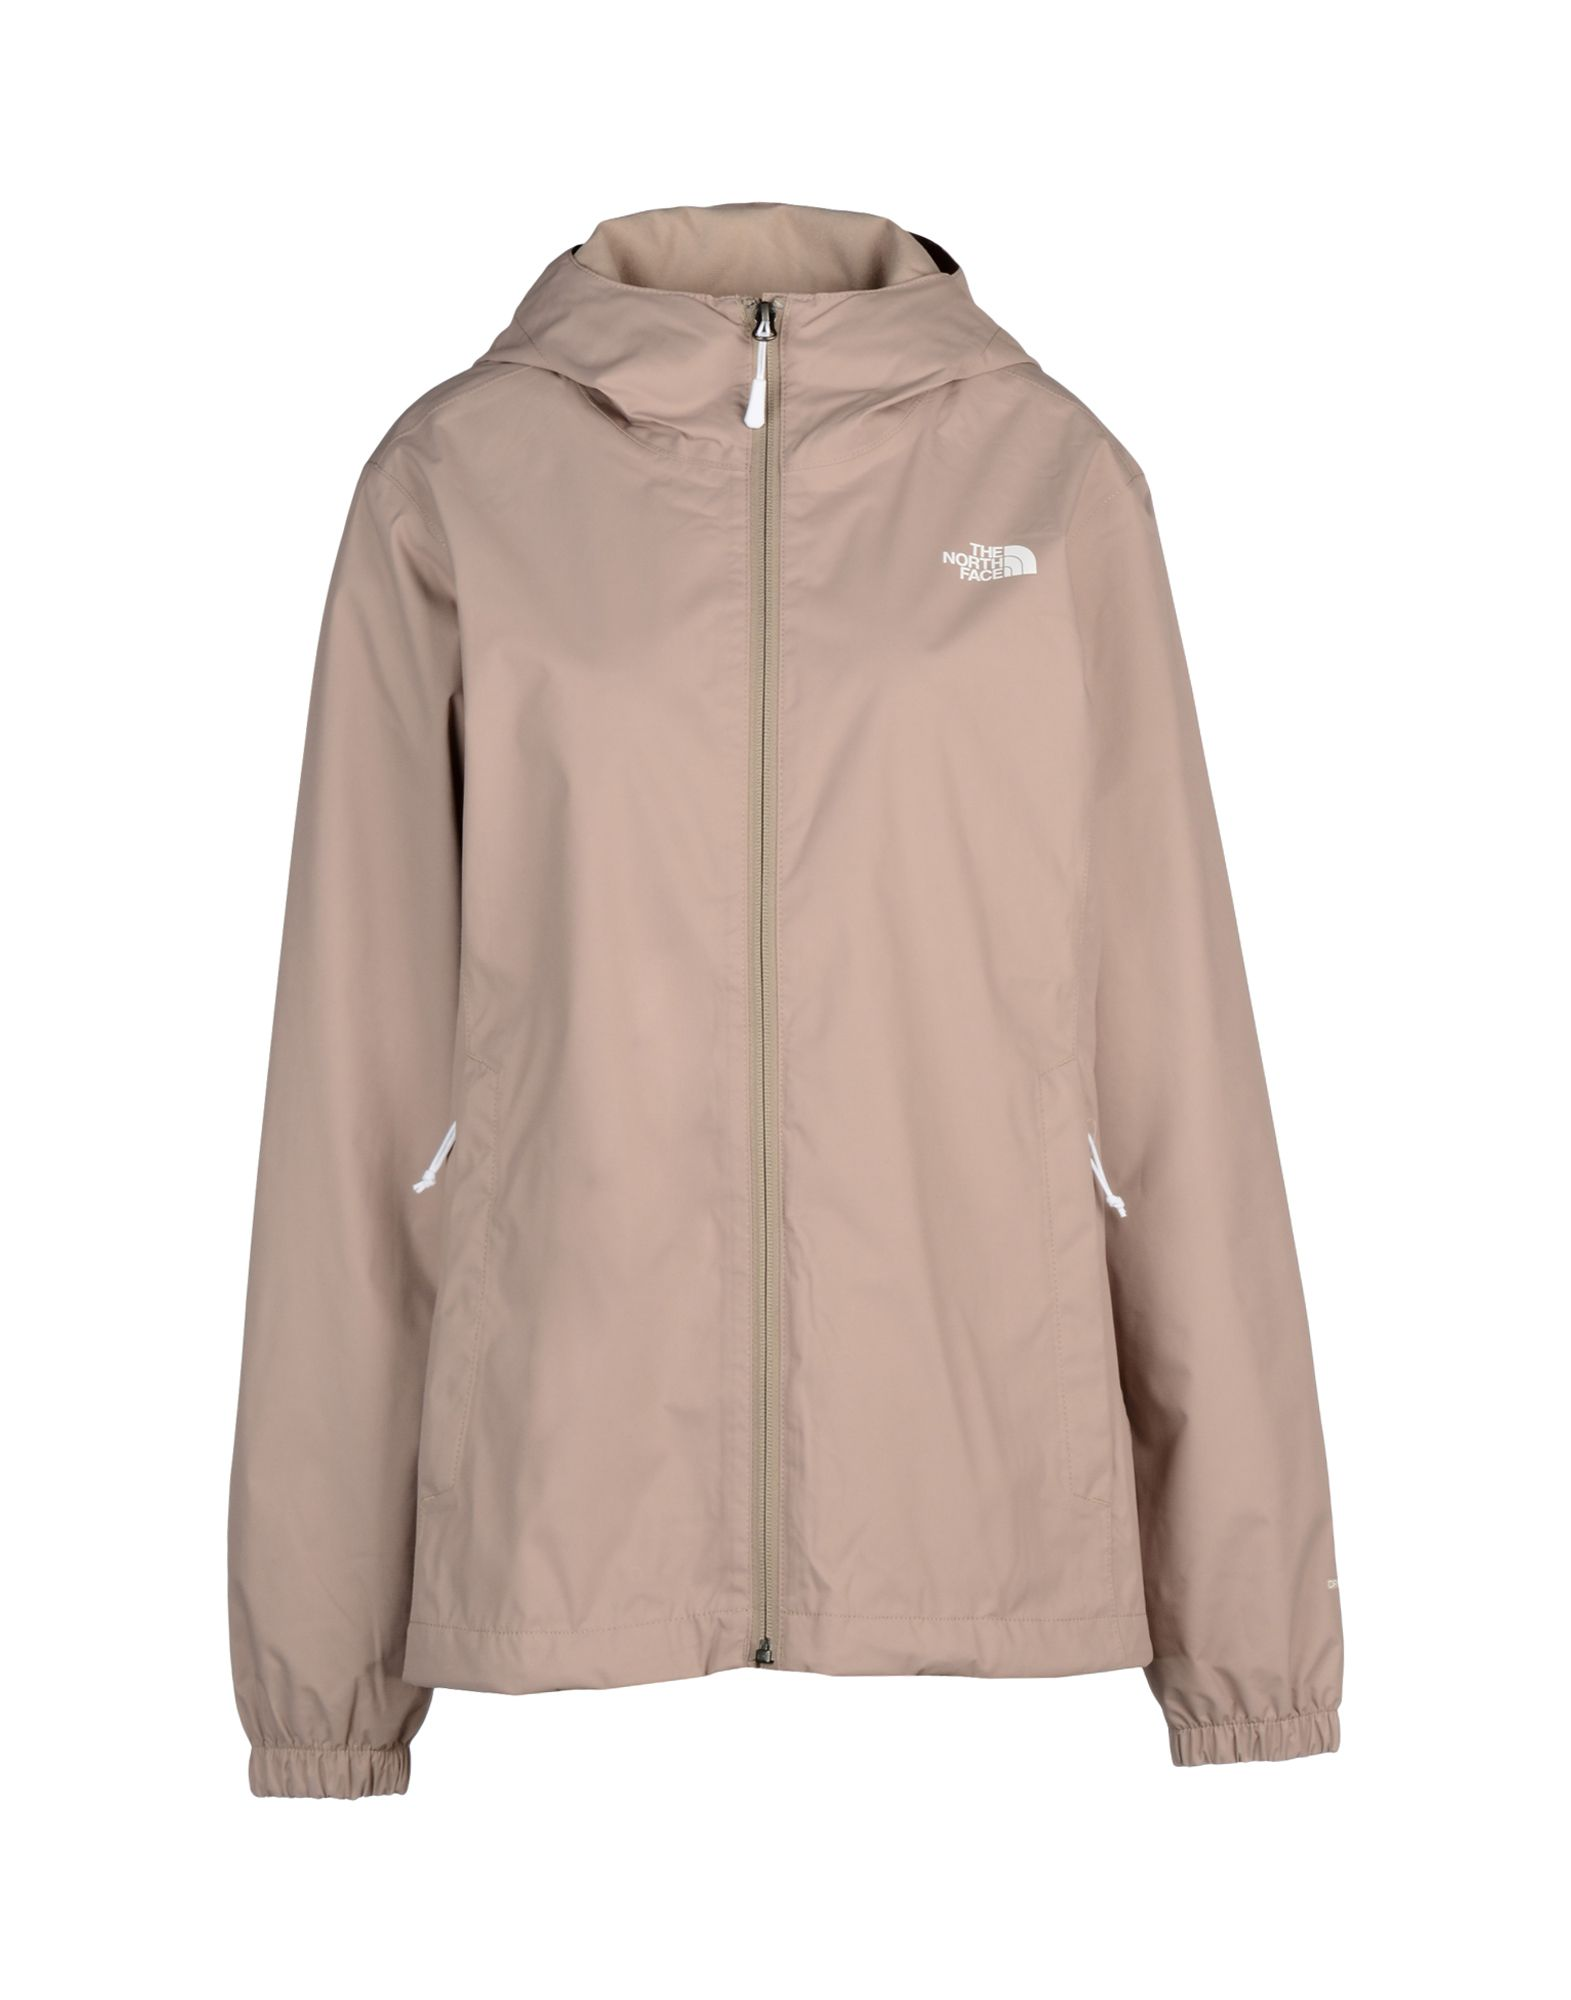 Giubbotto The North Face W Quest Jacket 2L Dryvent Waterproof - Donna -  Acquista online su YOOX - 41626771JK 94d5440ae68